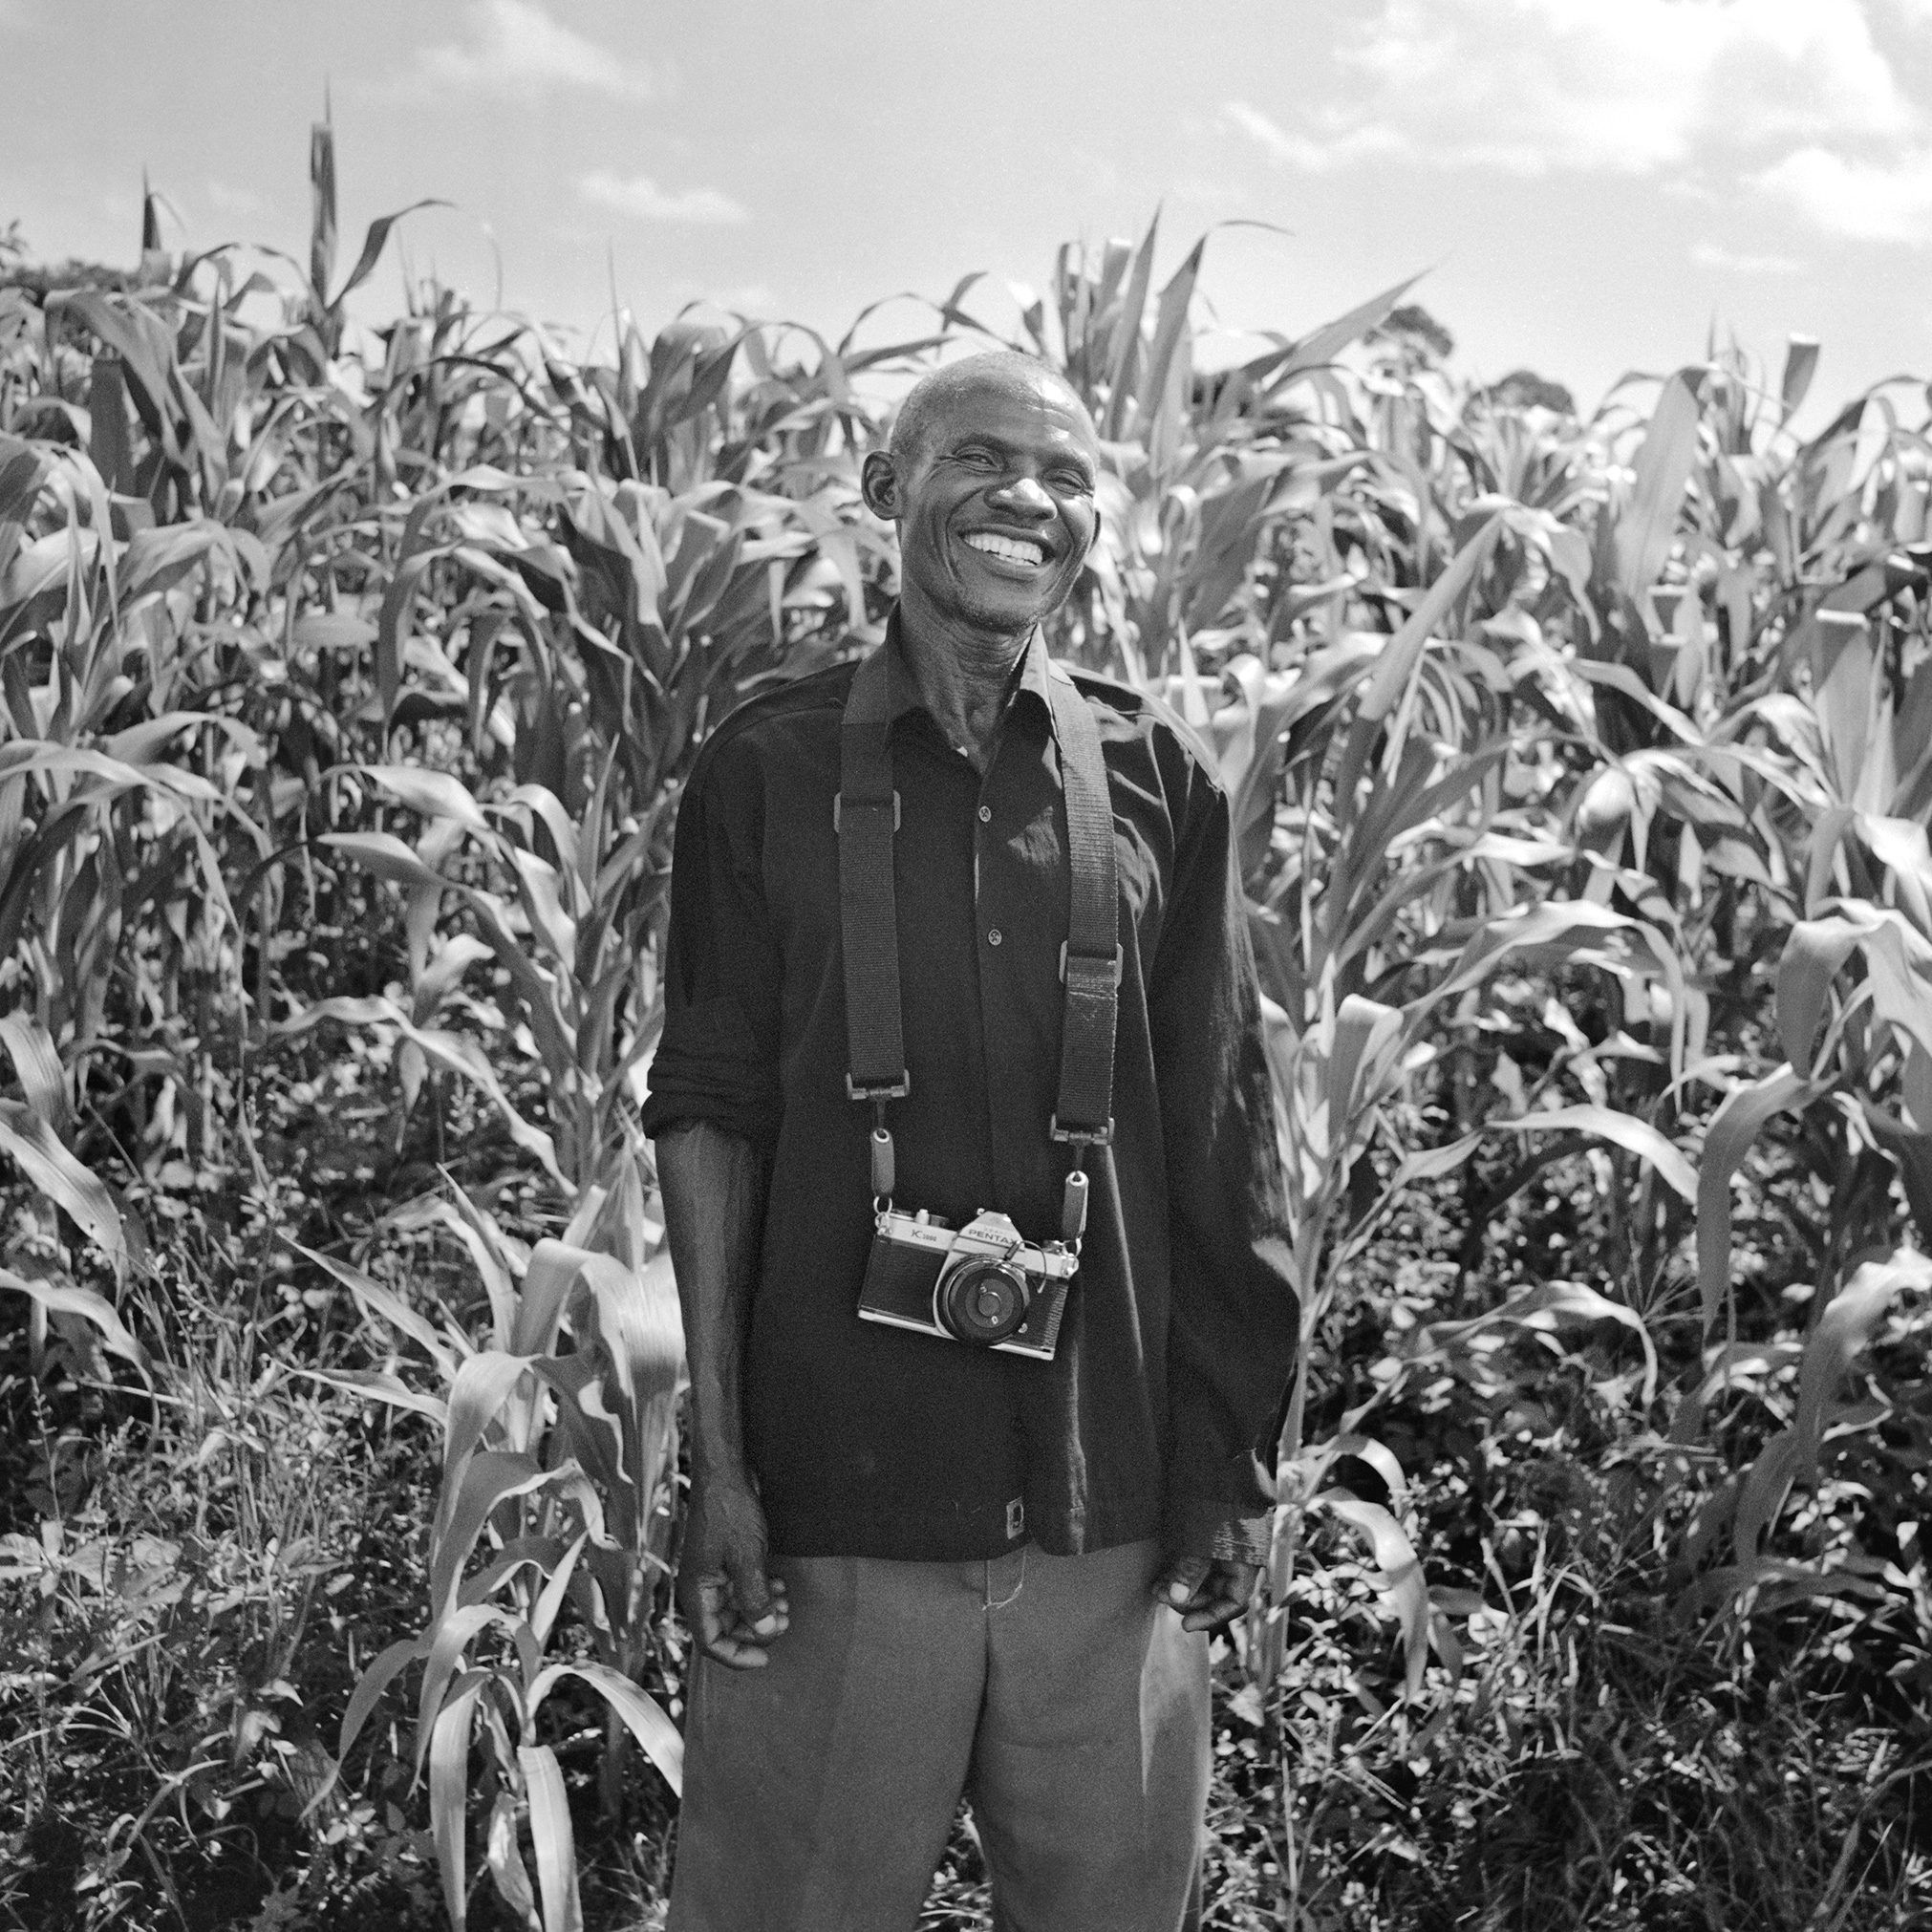 WPC President Waiswa John standing in front of his corn fields.   Here is our WPC President in all his glory and ebullience. Waiswa was a consistent source of positivity and wisdom who consistently brought grace and humor to our collective. He is a strong community leader committed to facilitating agricultural improvement projects in Wanteete;including the construction of a grain grinding mill, and a major reforestation project. He also is the treasurer of the Savings and Credit Cooperative (SACCO) that the WPC started last year from the money they earned through the sale of their photographs.